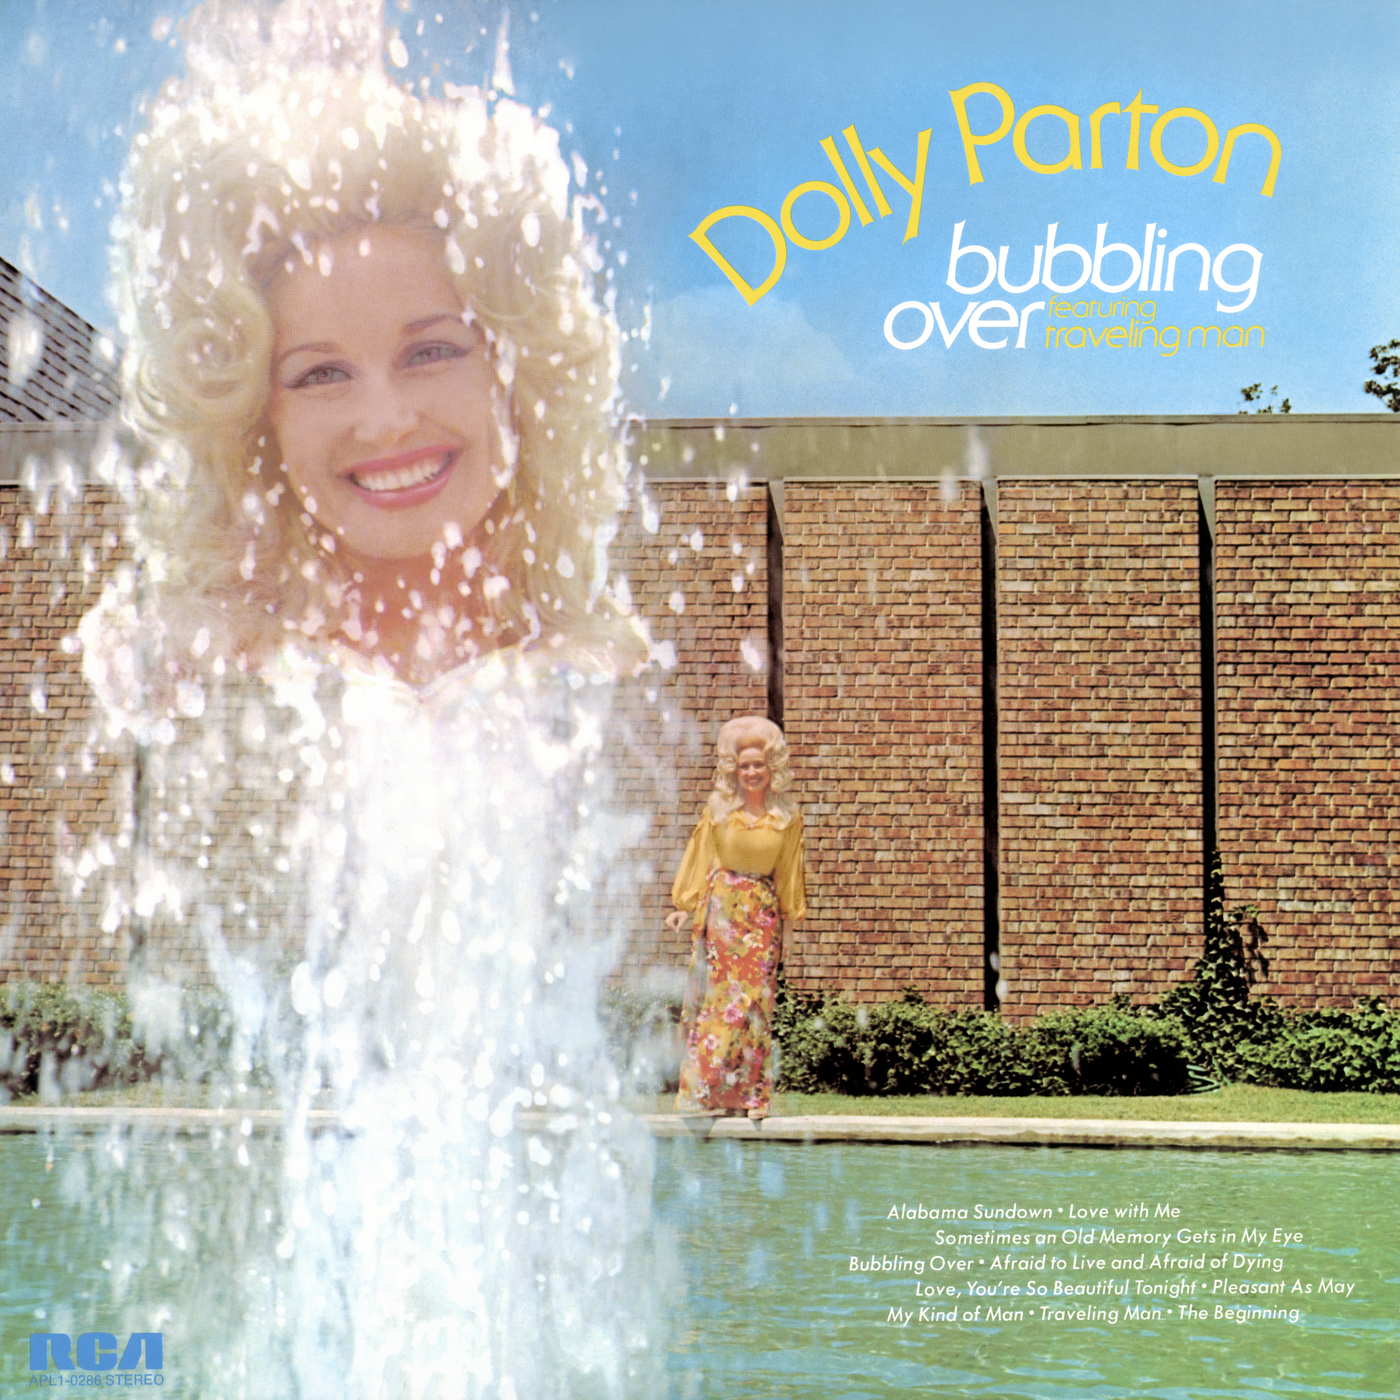 Bubbling Over - Dolly Parton